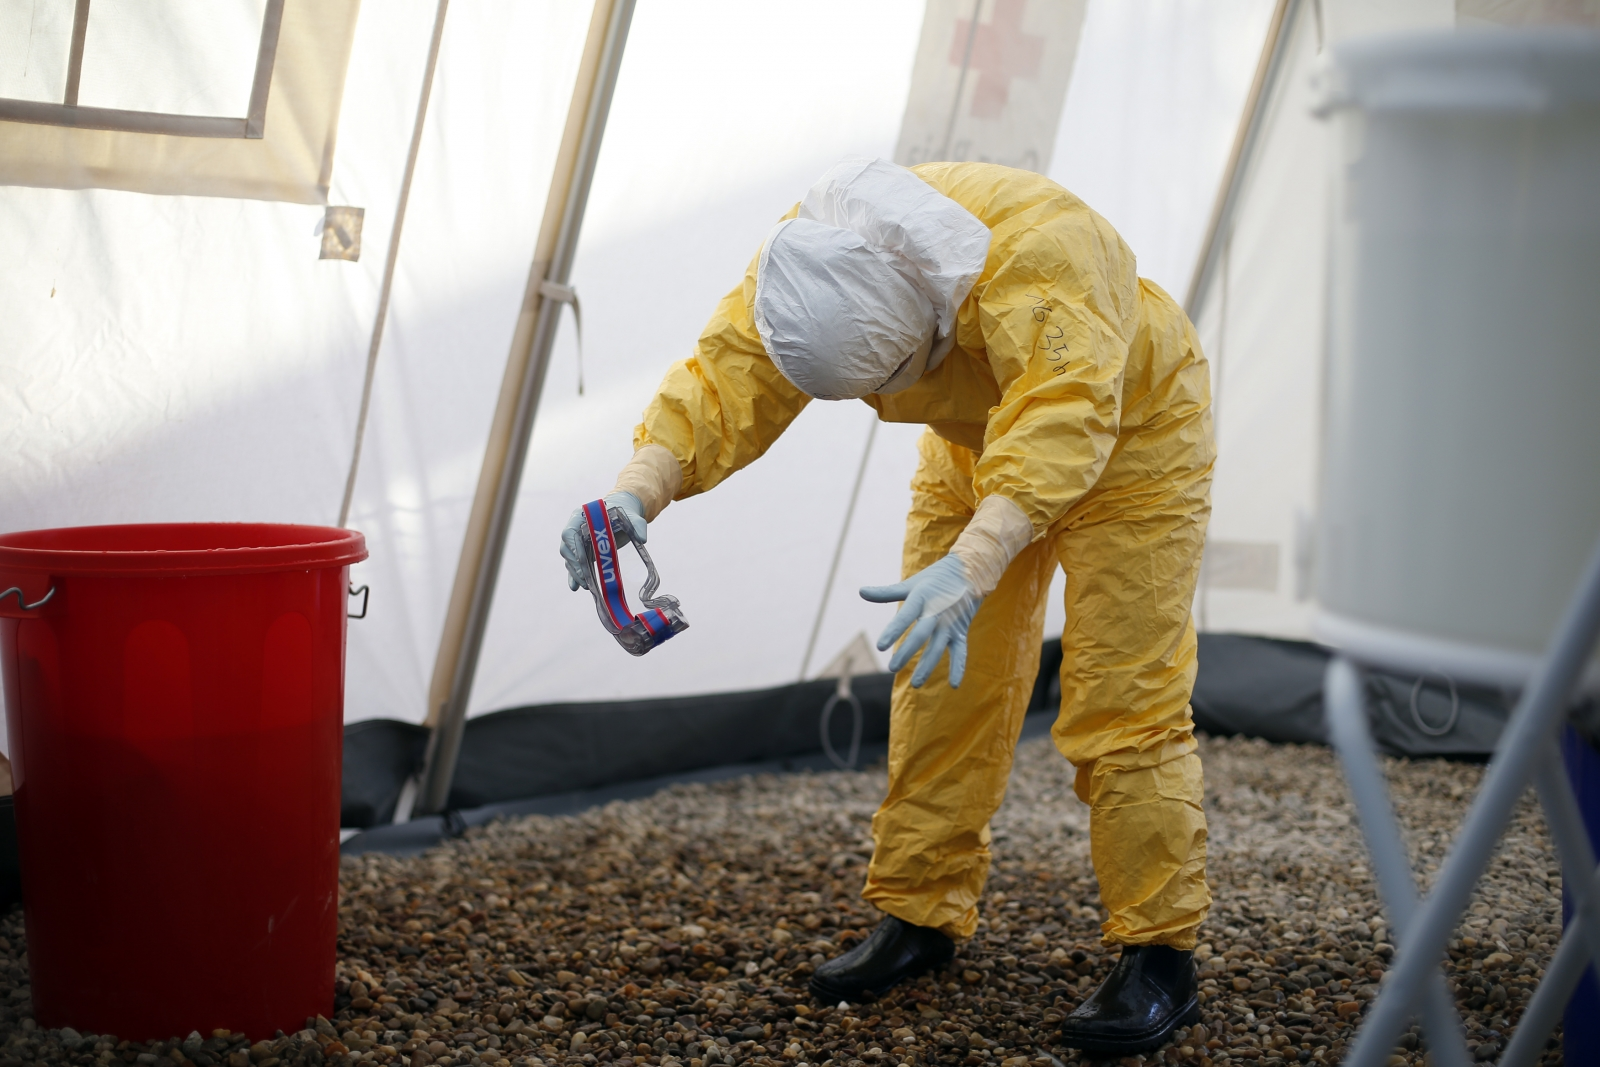 Russian plane delivers Ebola aid in African countries